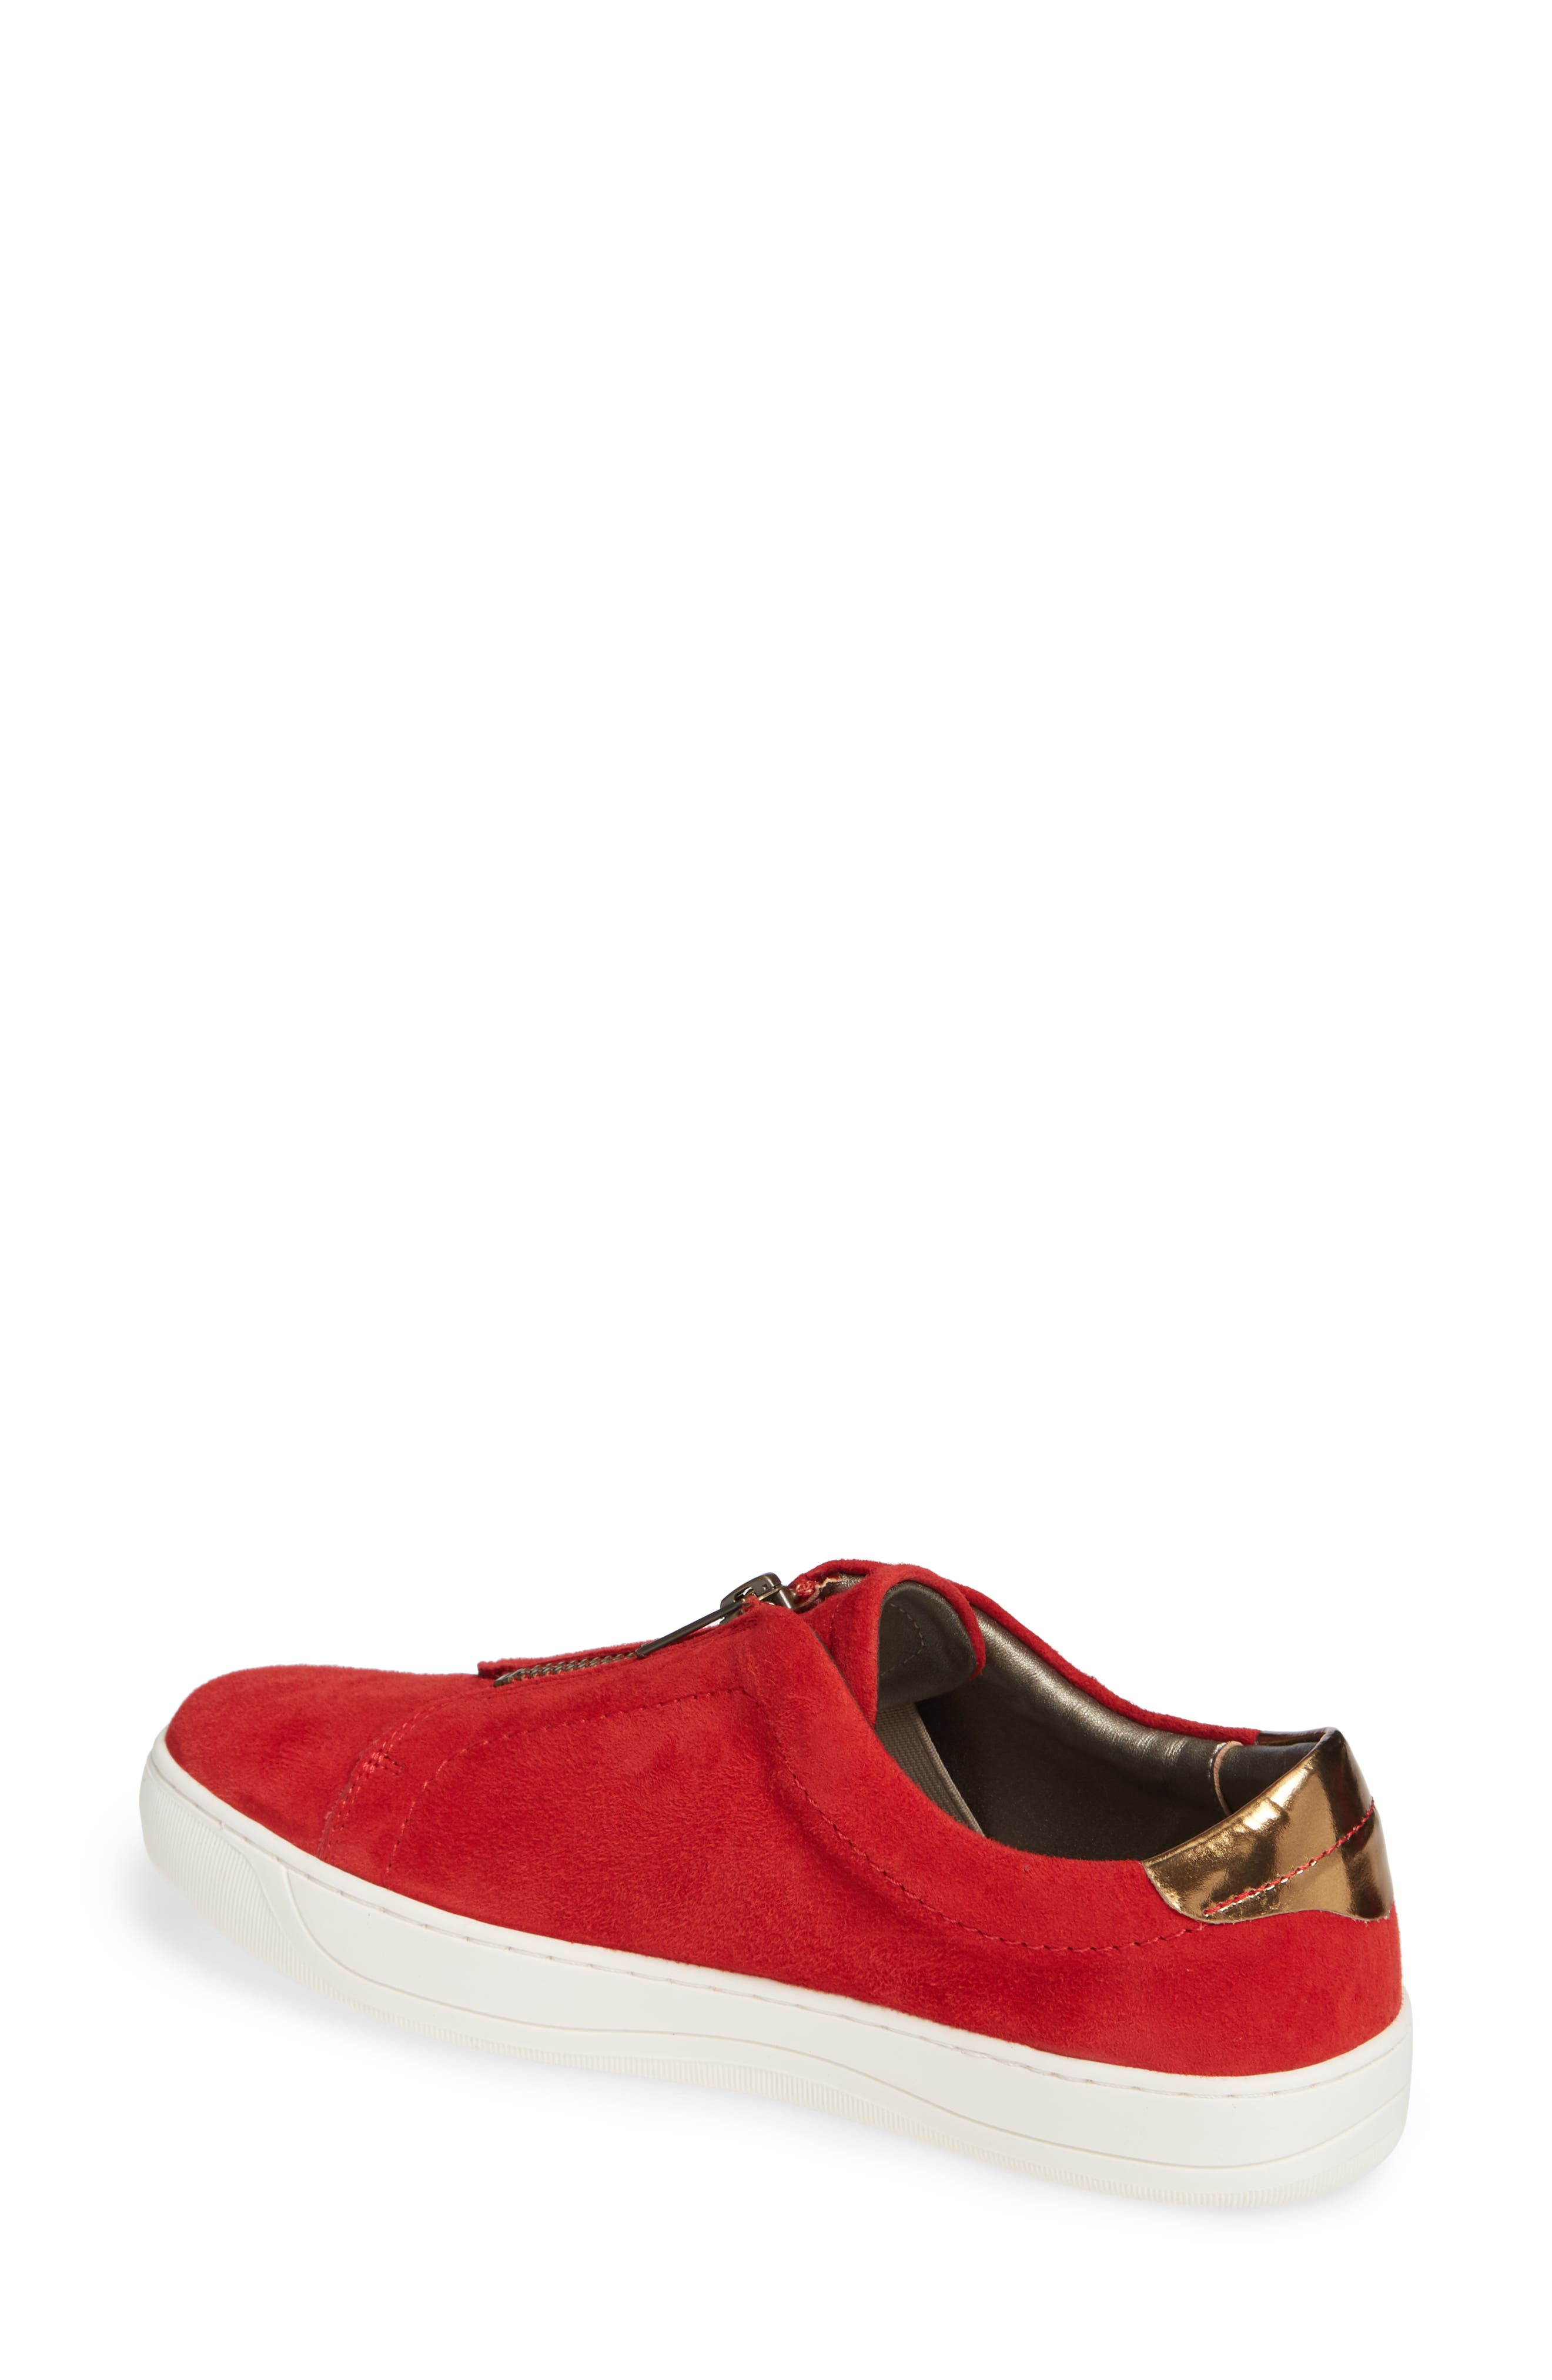 Emma Sneaker,                             Alternate thumbnail 2, color,                             RED SUEDE